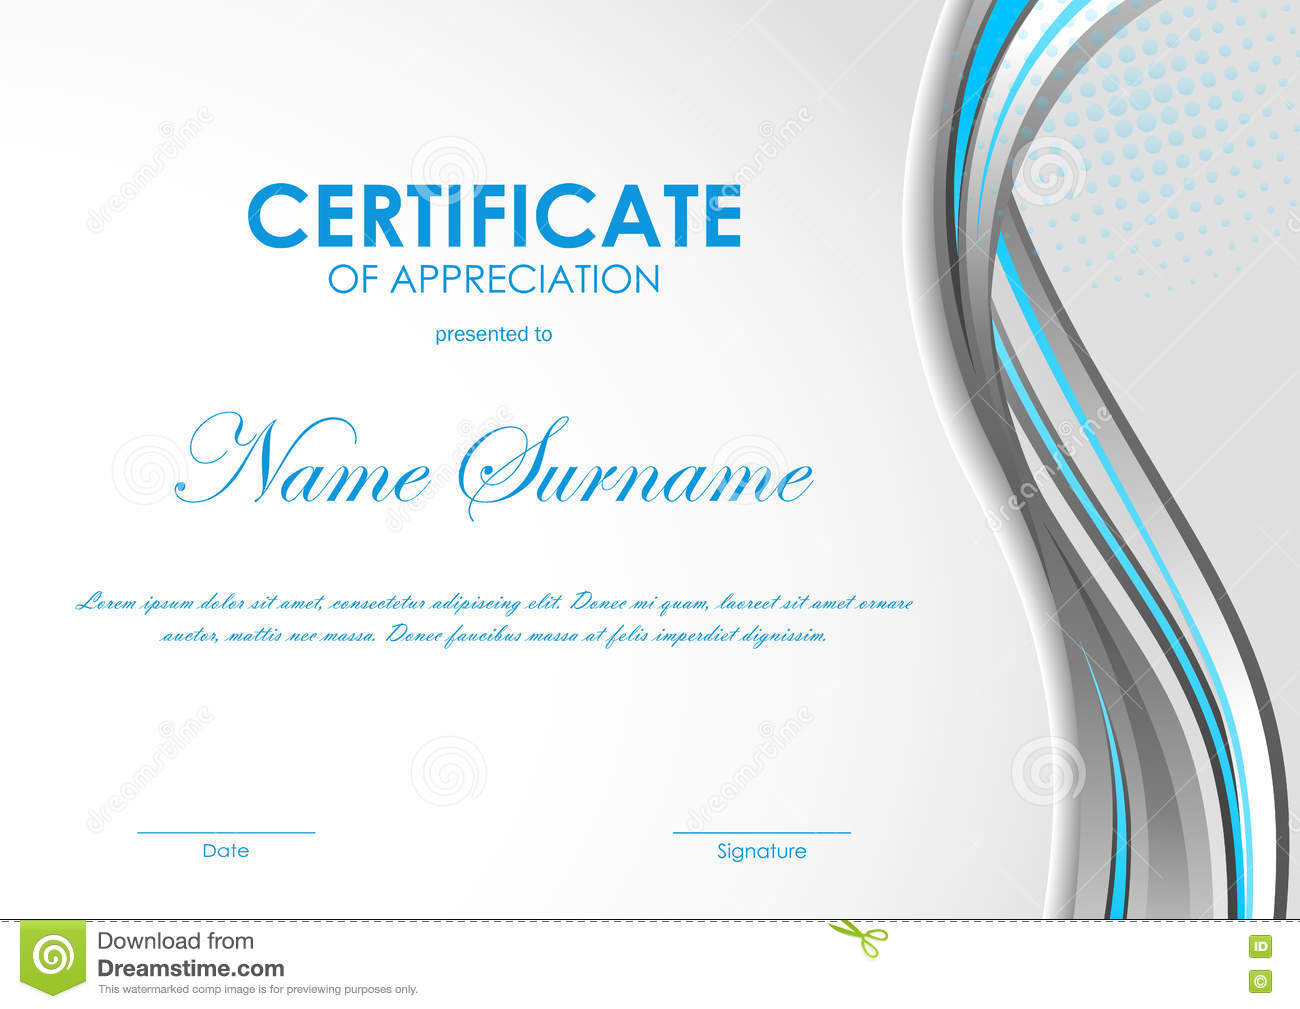 Certificate Of Appreciation Template Stock Vector Illustration Of